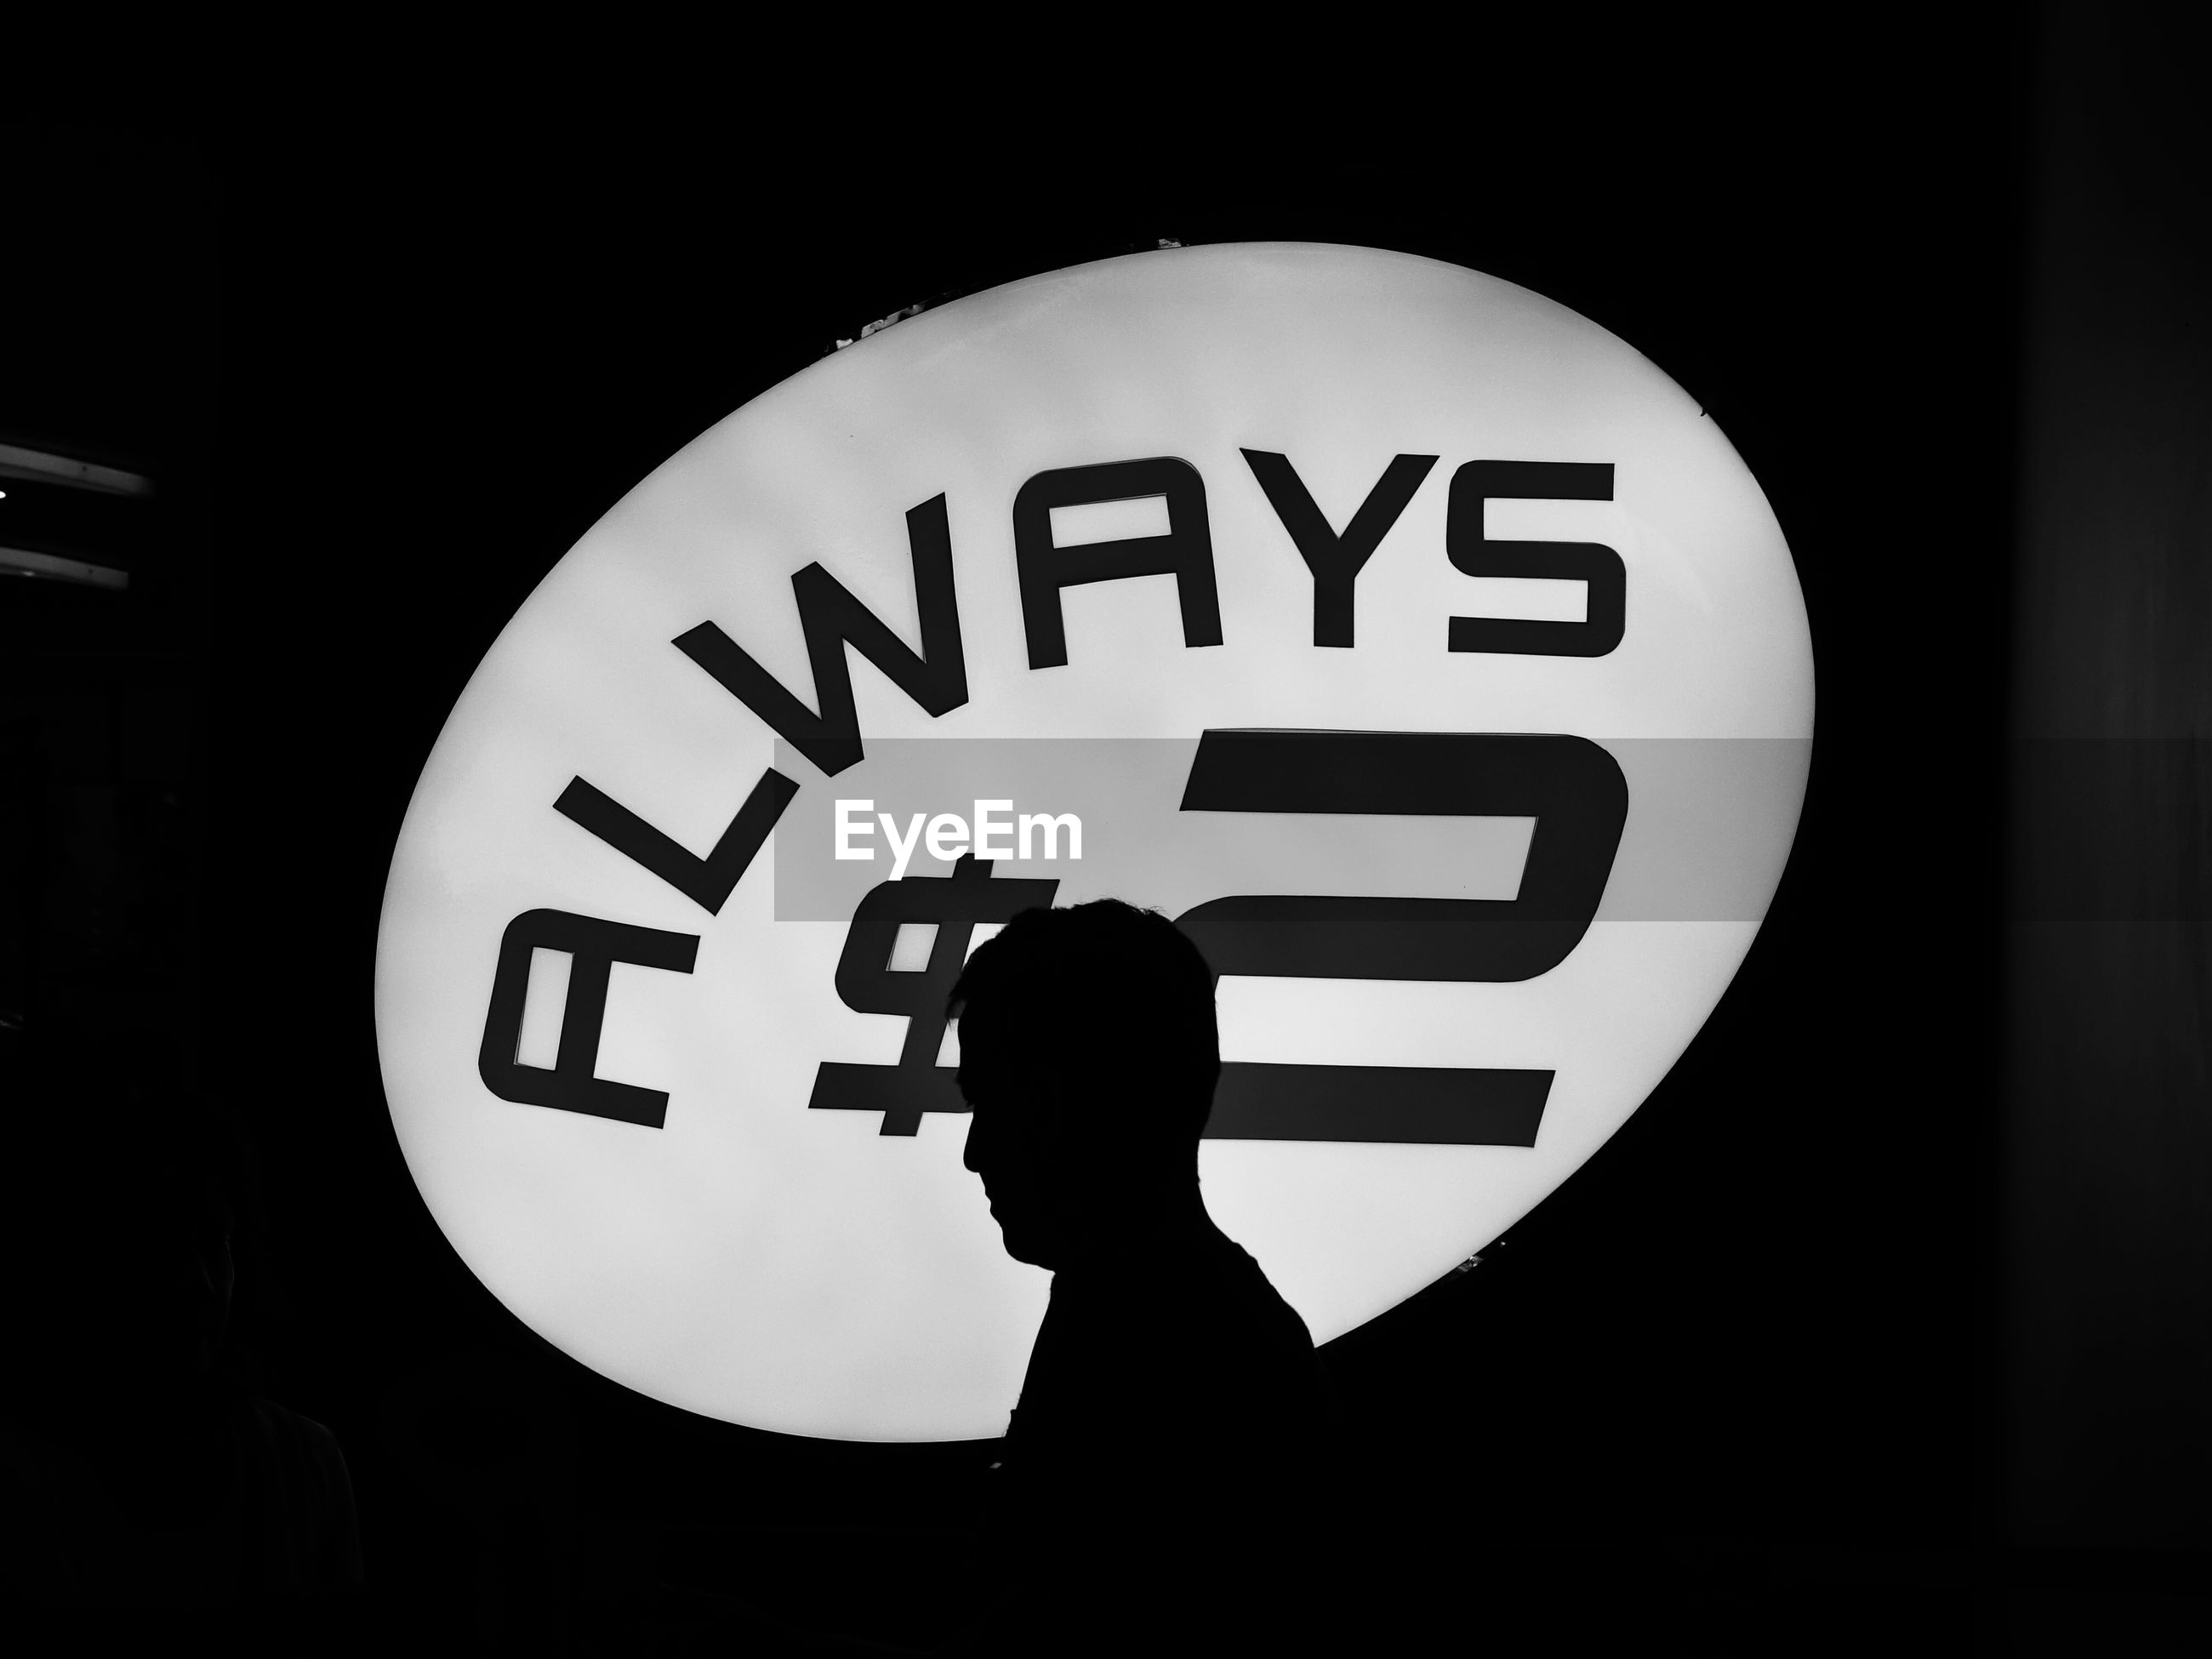 Silhouette of person in front of illuminated sign board